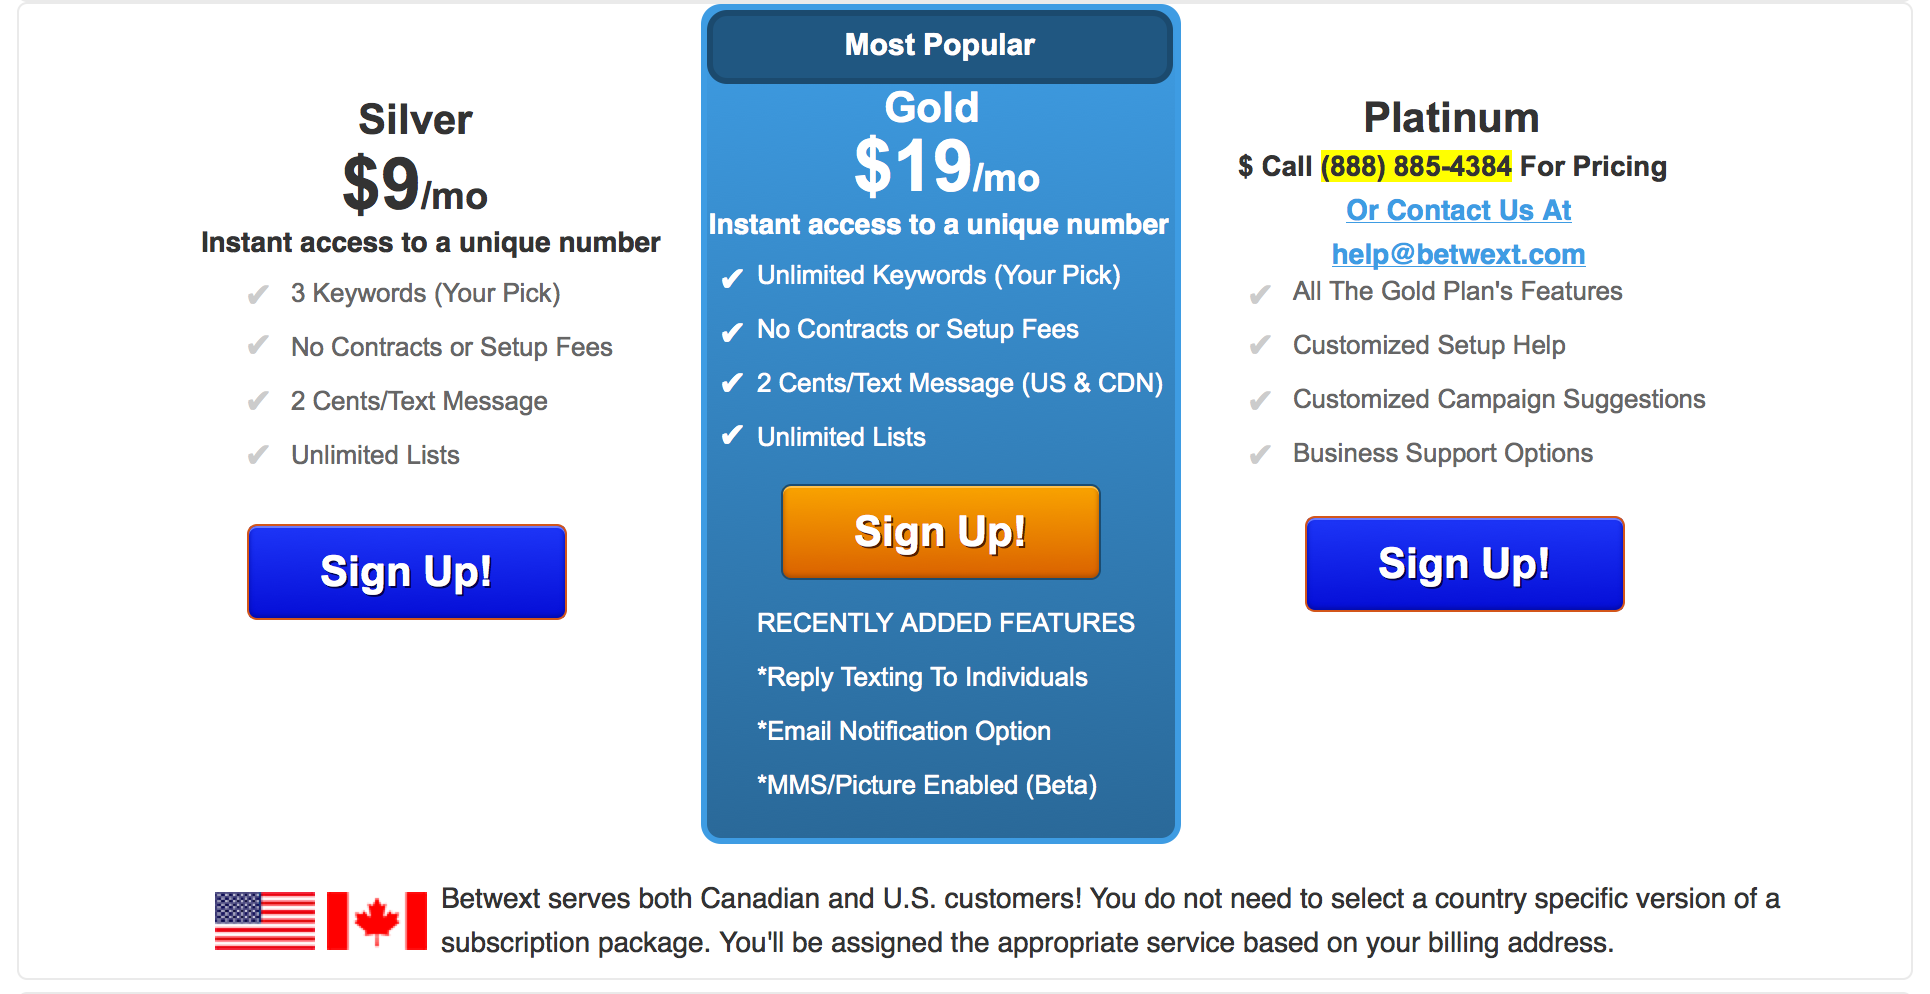 SMS and MMS Pricing